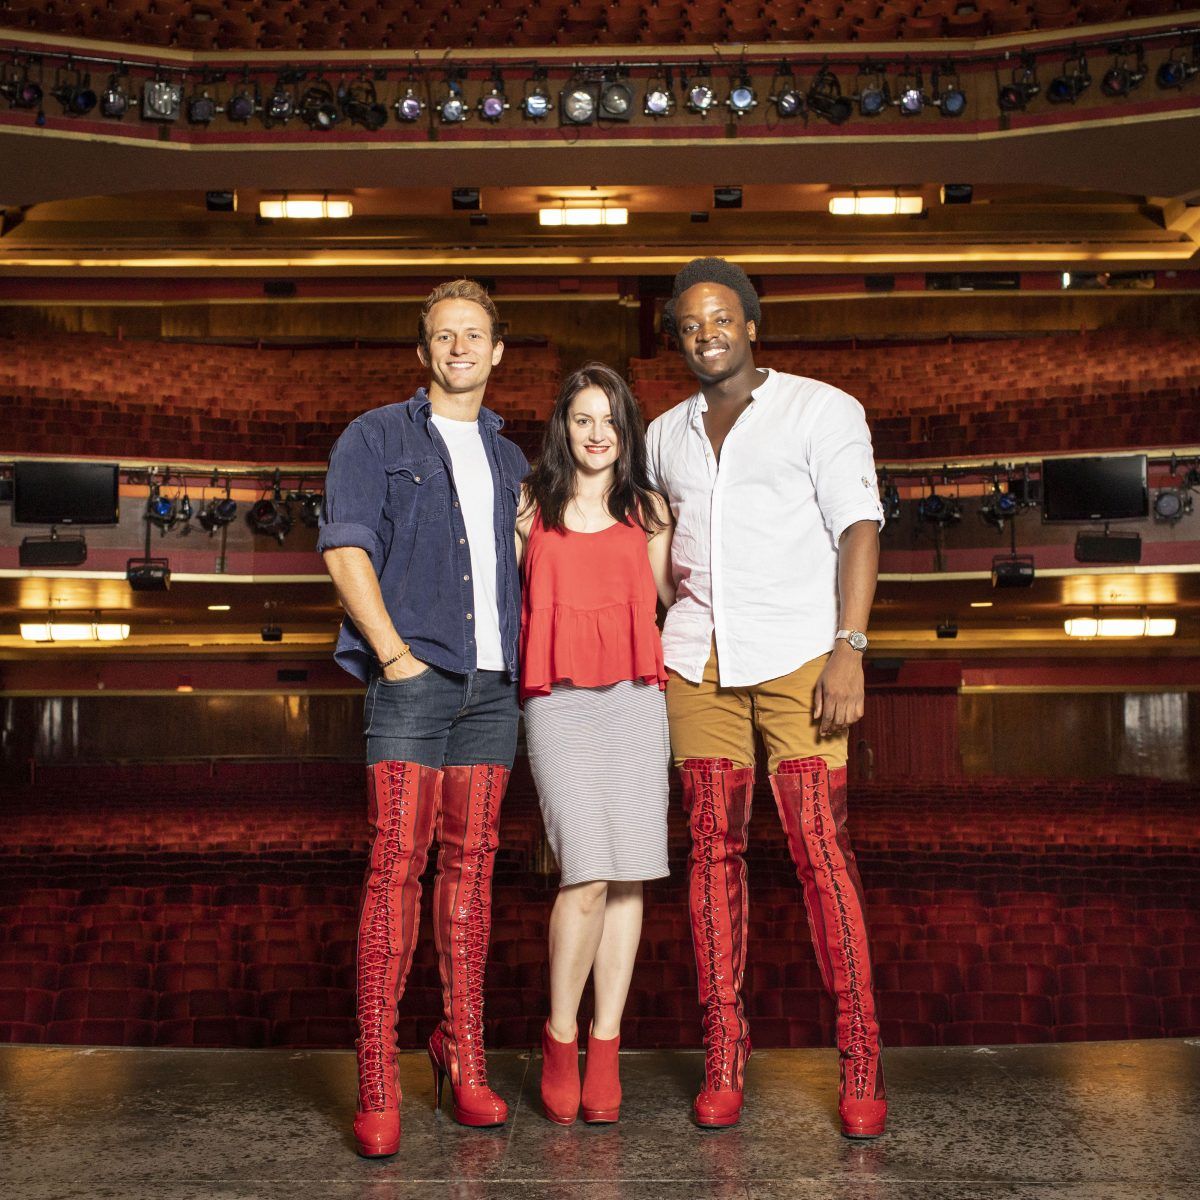 The multi award-winning show, #KinkyBoots, announces the cast for the #UK #tour and sets a date for shows at #VenueCymru, #Llandudno #NorthWales